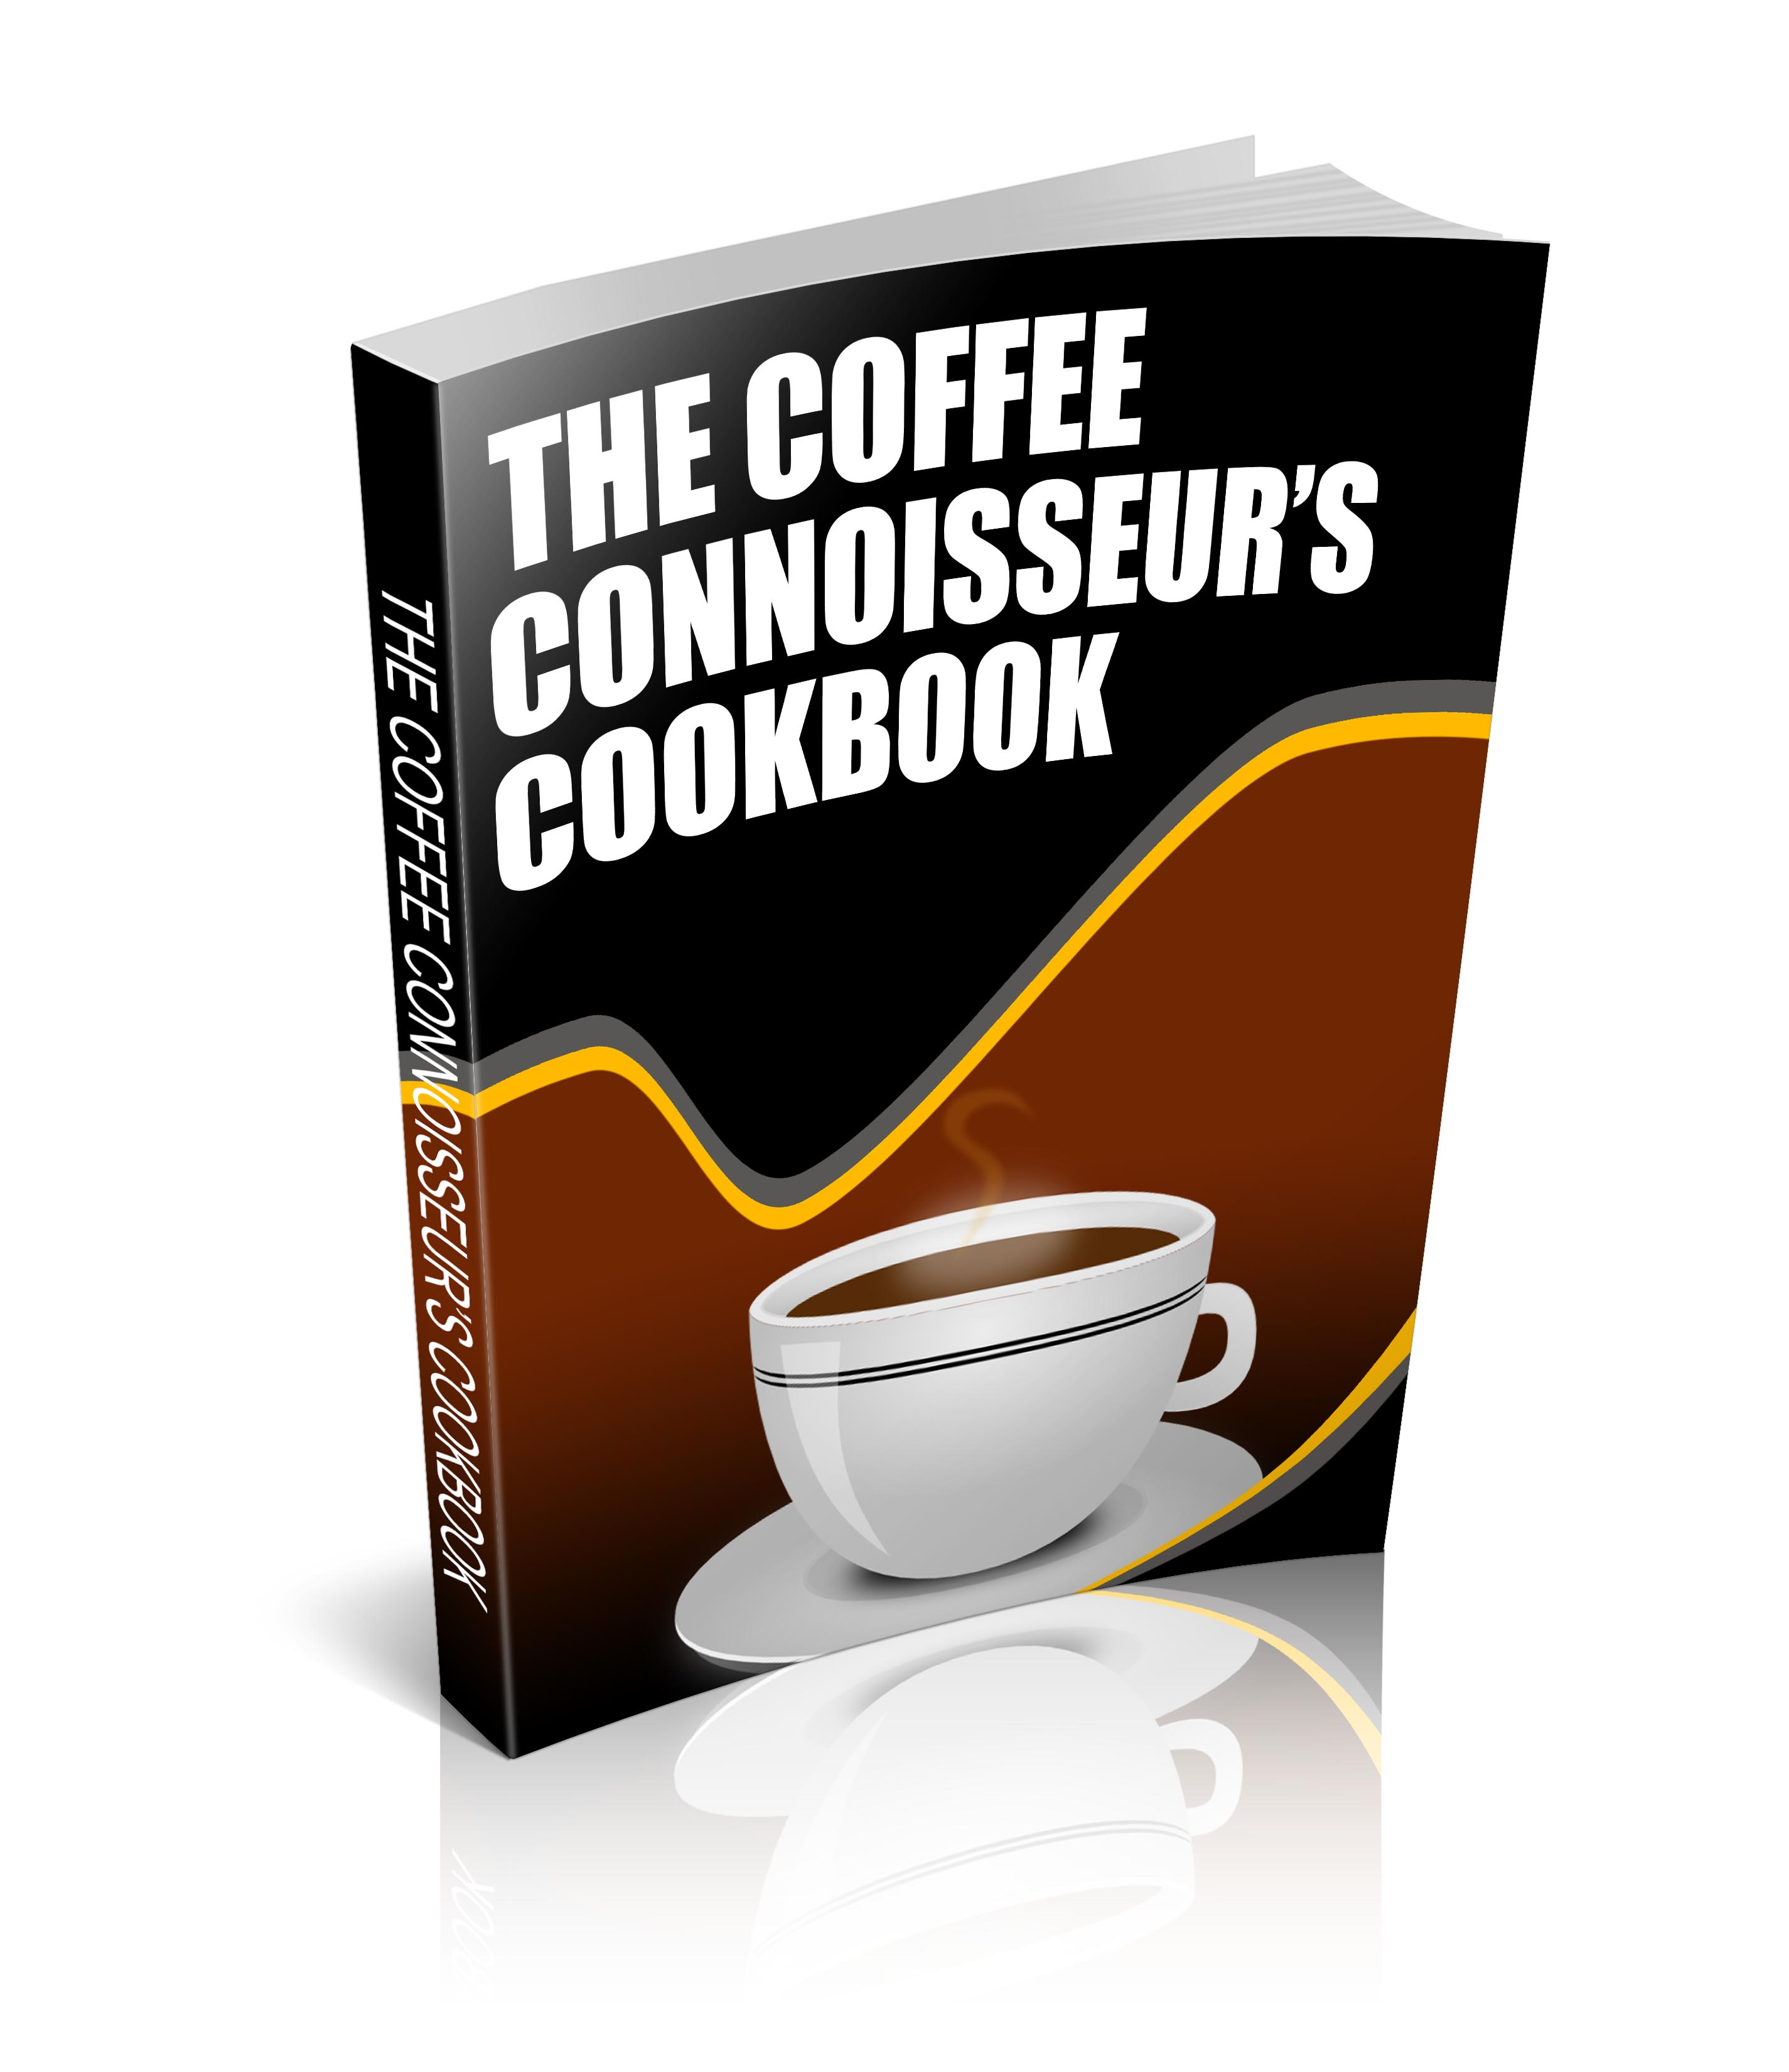 RR Coffee Conn Cook book